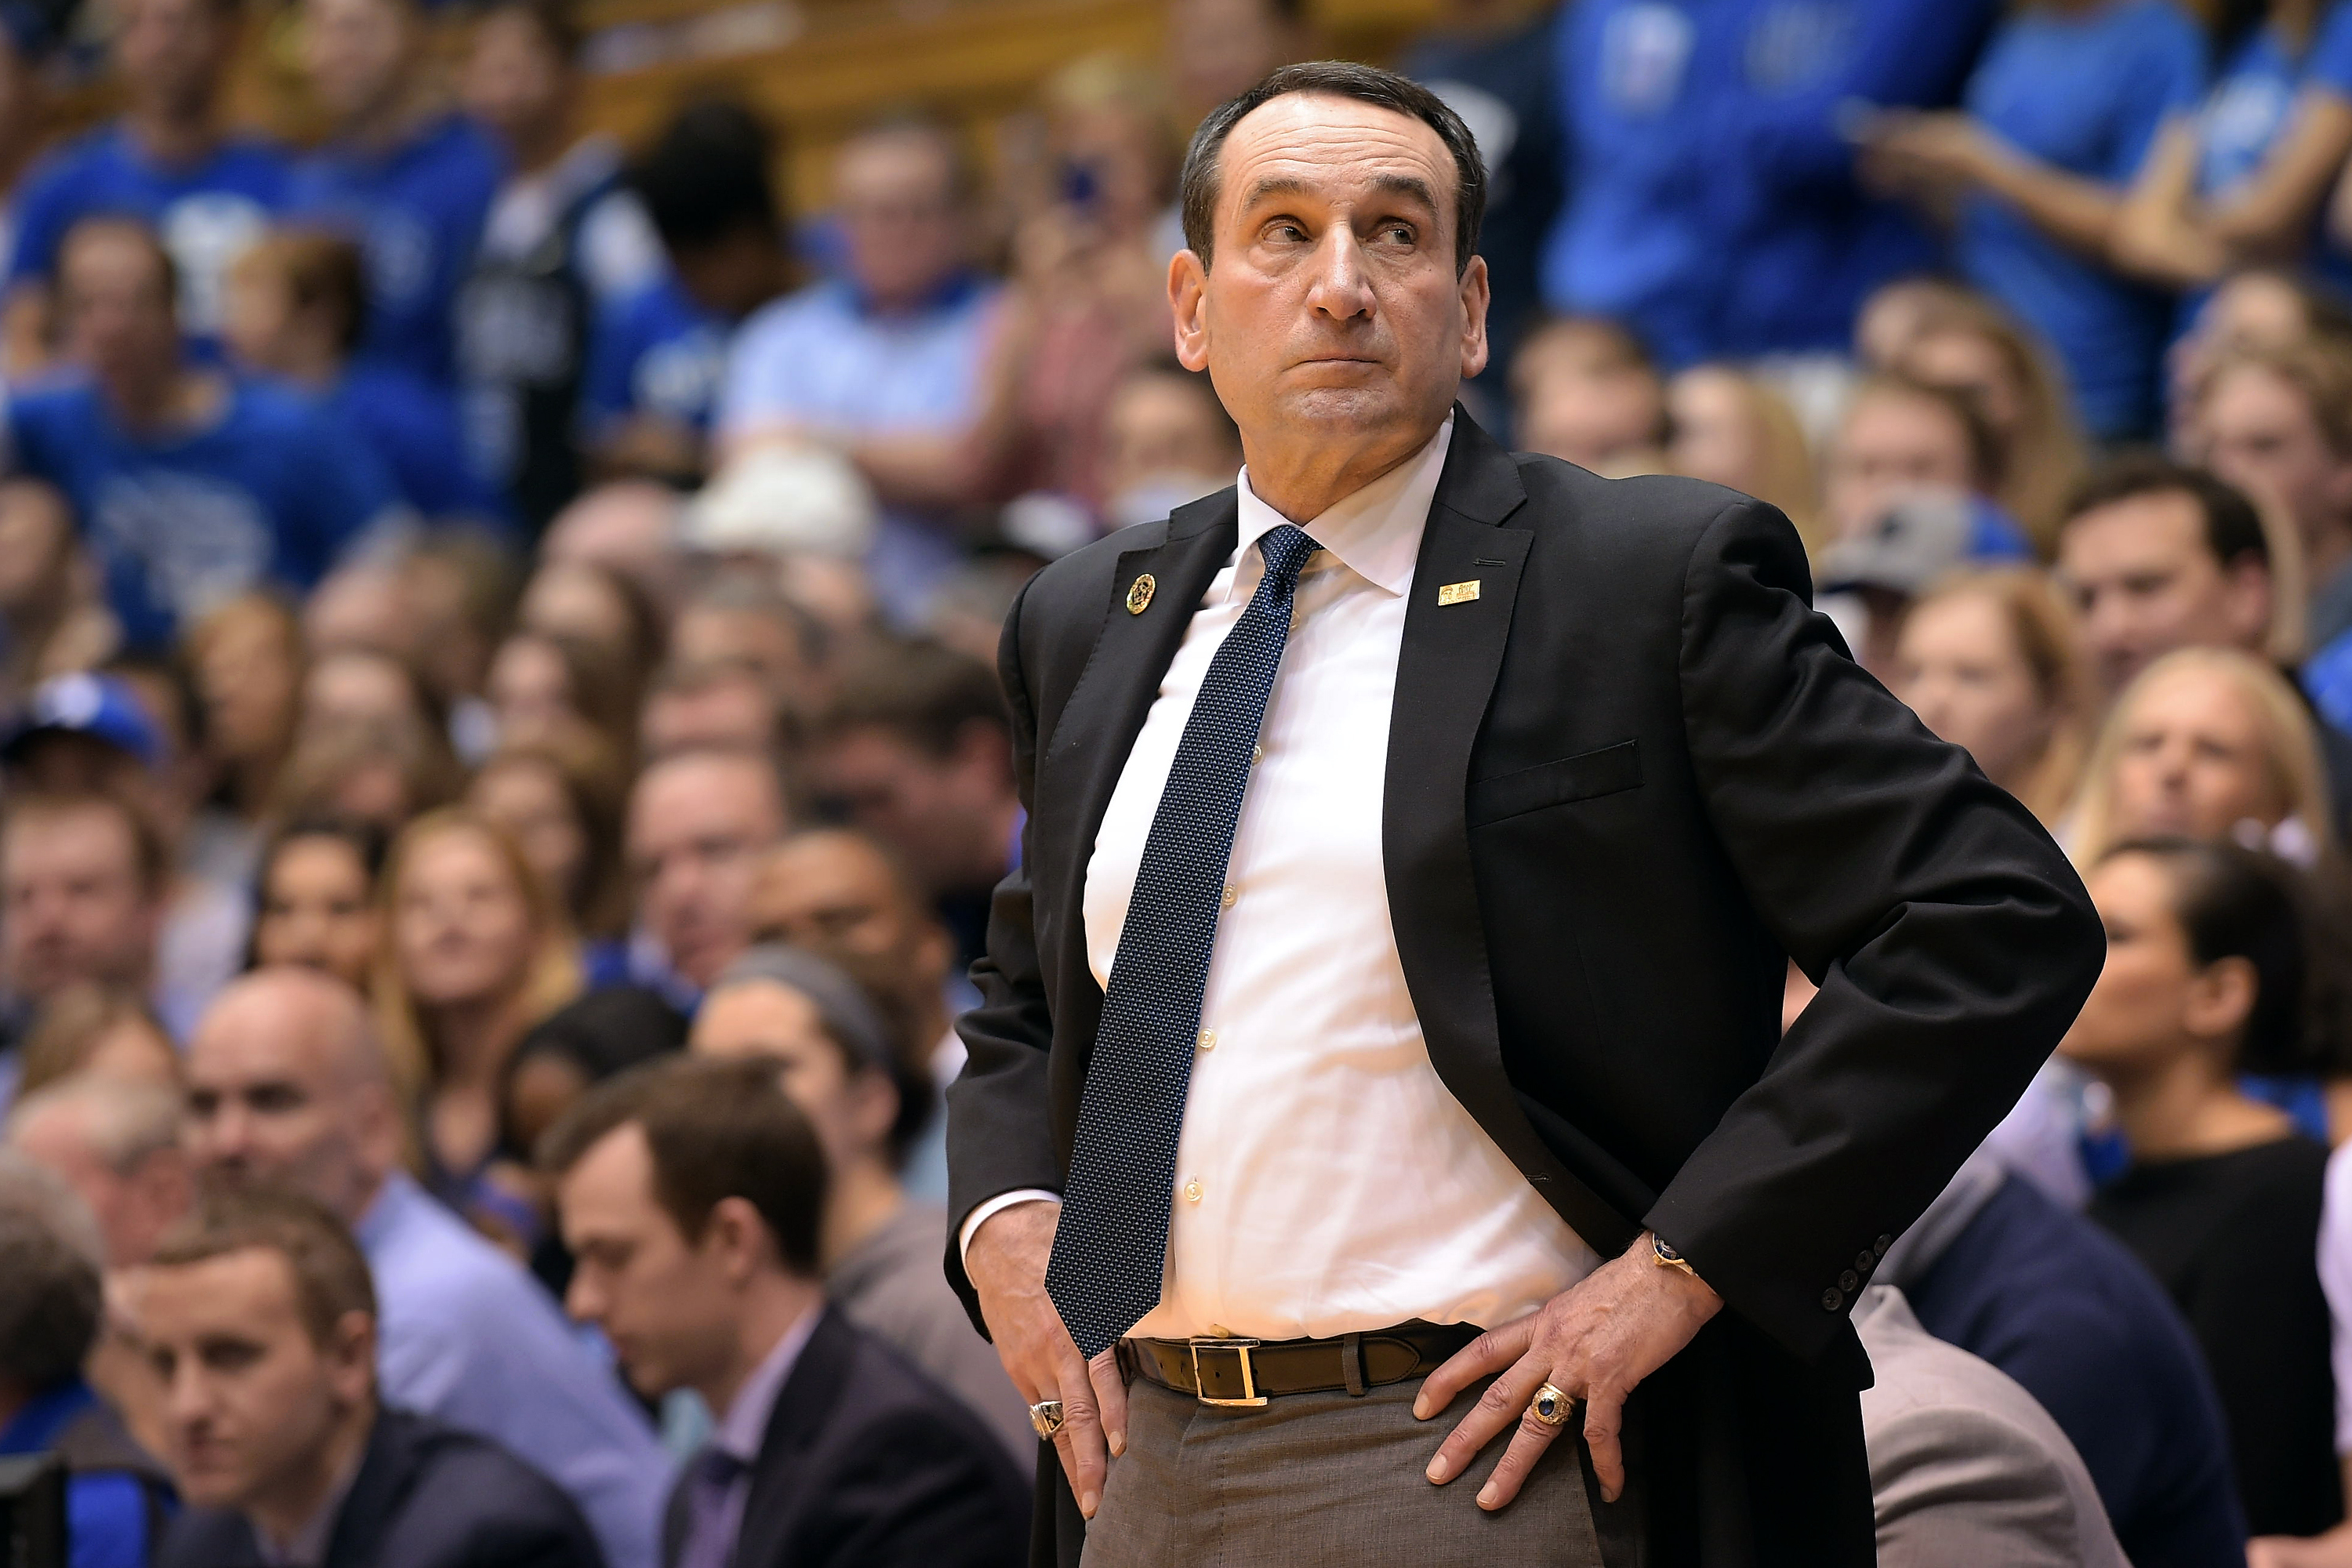 Head coach Mike Krzyzewski of the Duke Blue Devils looks on during their game against the Notre Dame Fighting Irish at Cameron Indoor Stadium on January 16, 2016 in Durham, North Carolina.